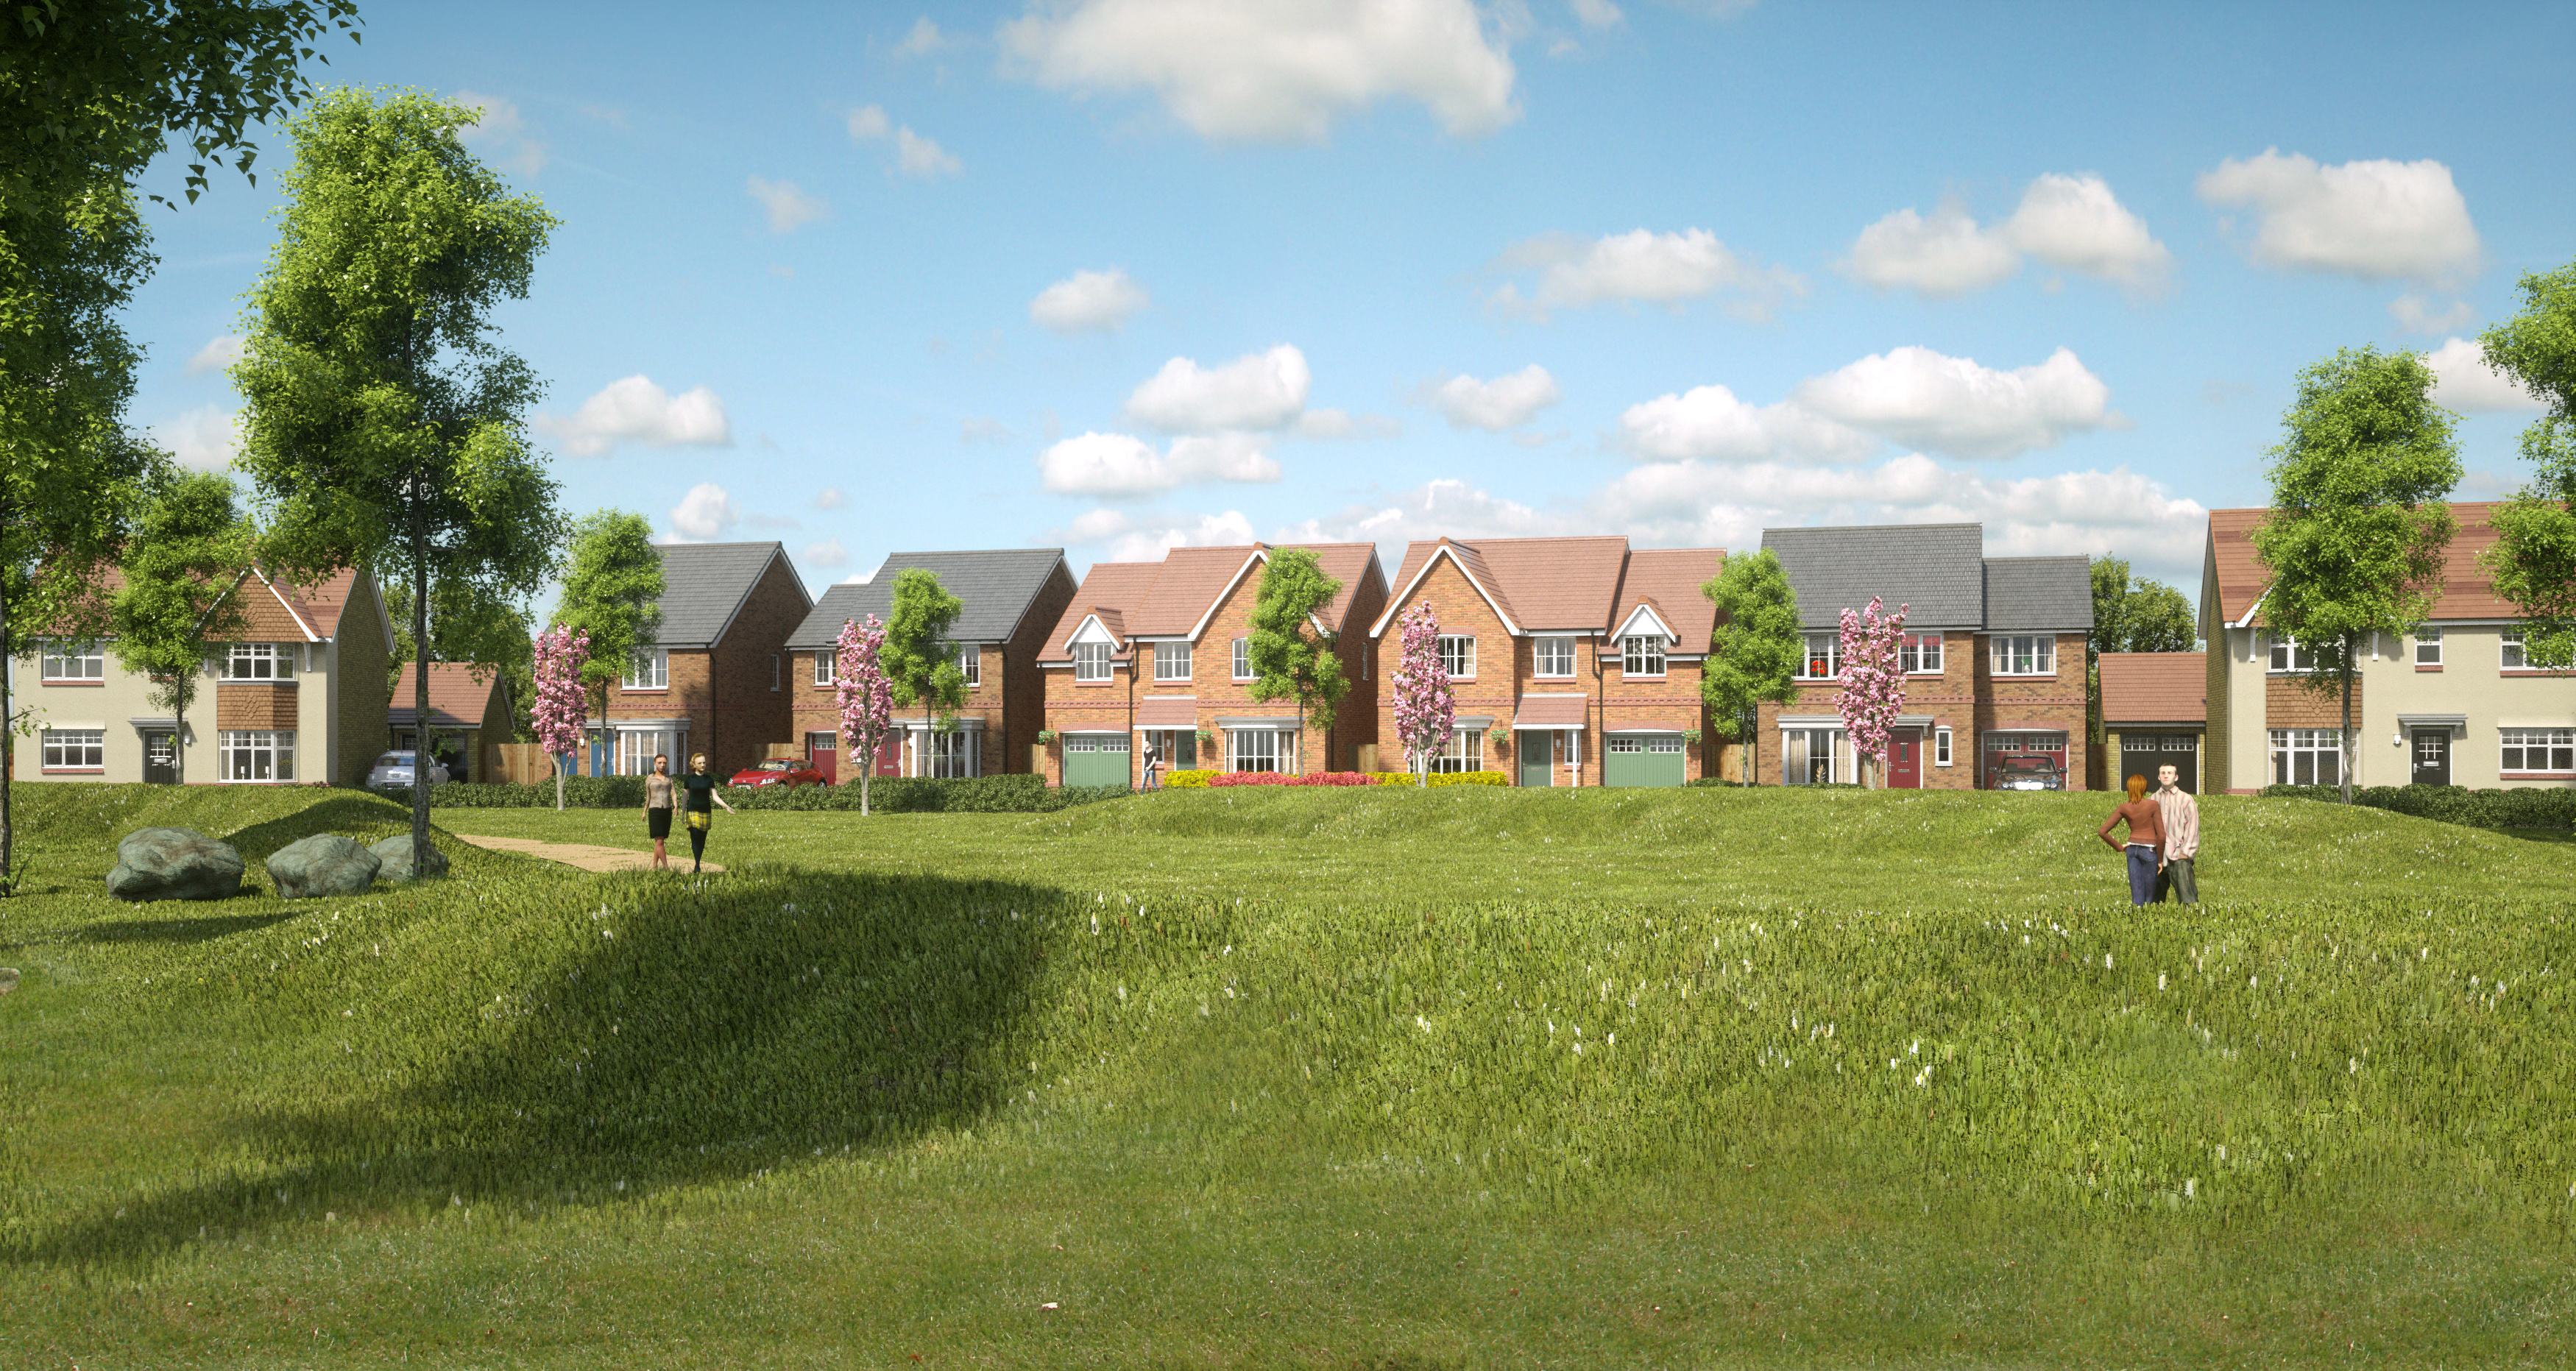 1,600 HOMES PLAN 'NOT YET DONE DEAL' SAY TOWN COUNCIL